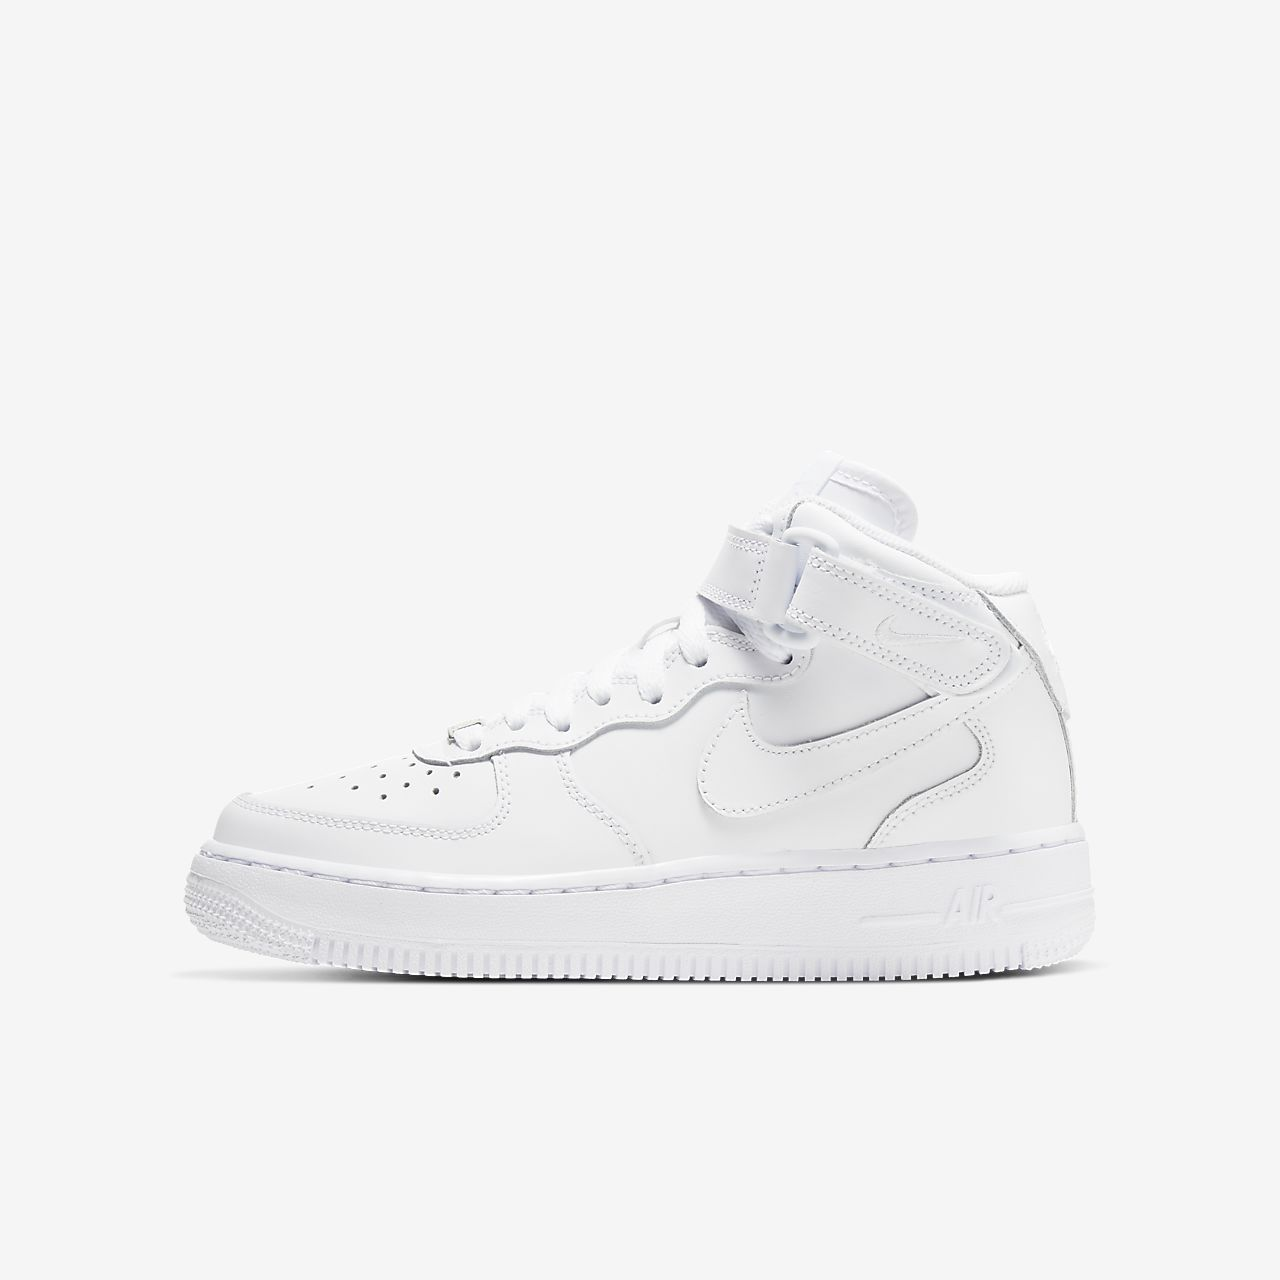 83bbef84949 Nike Air Force 1 Mid 06 Big Kids  Shoe. Nike.com